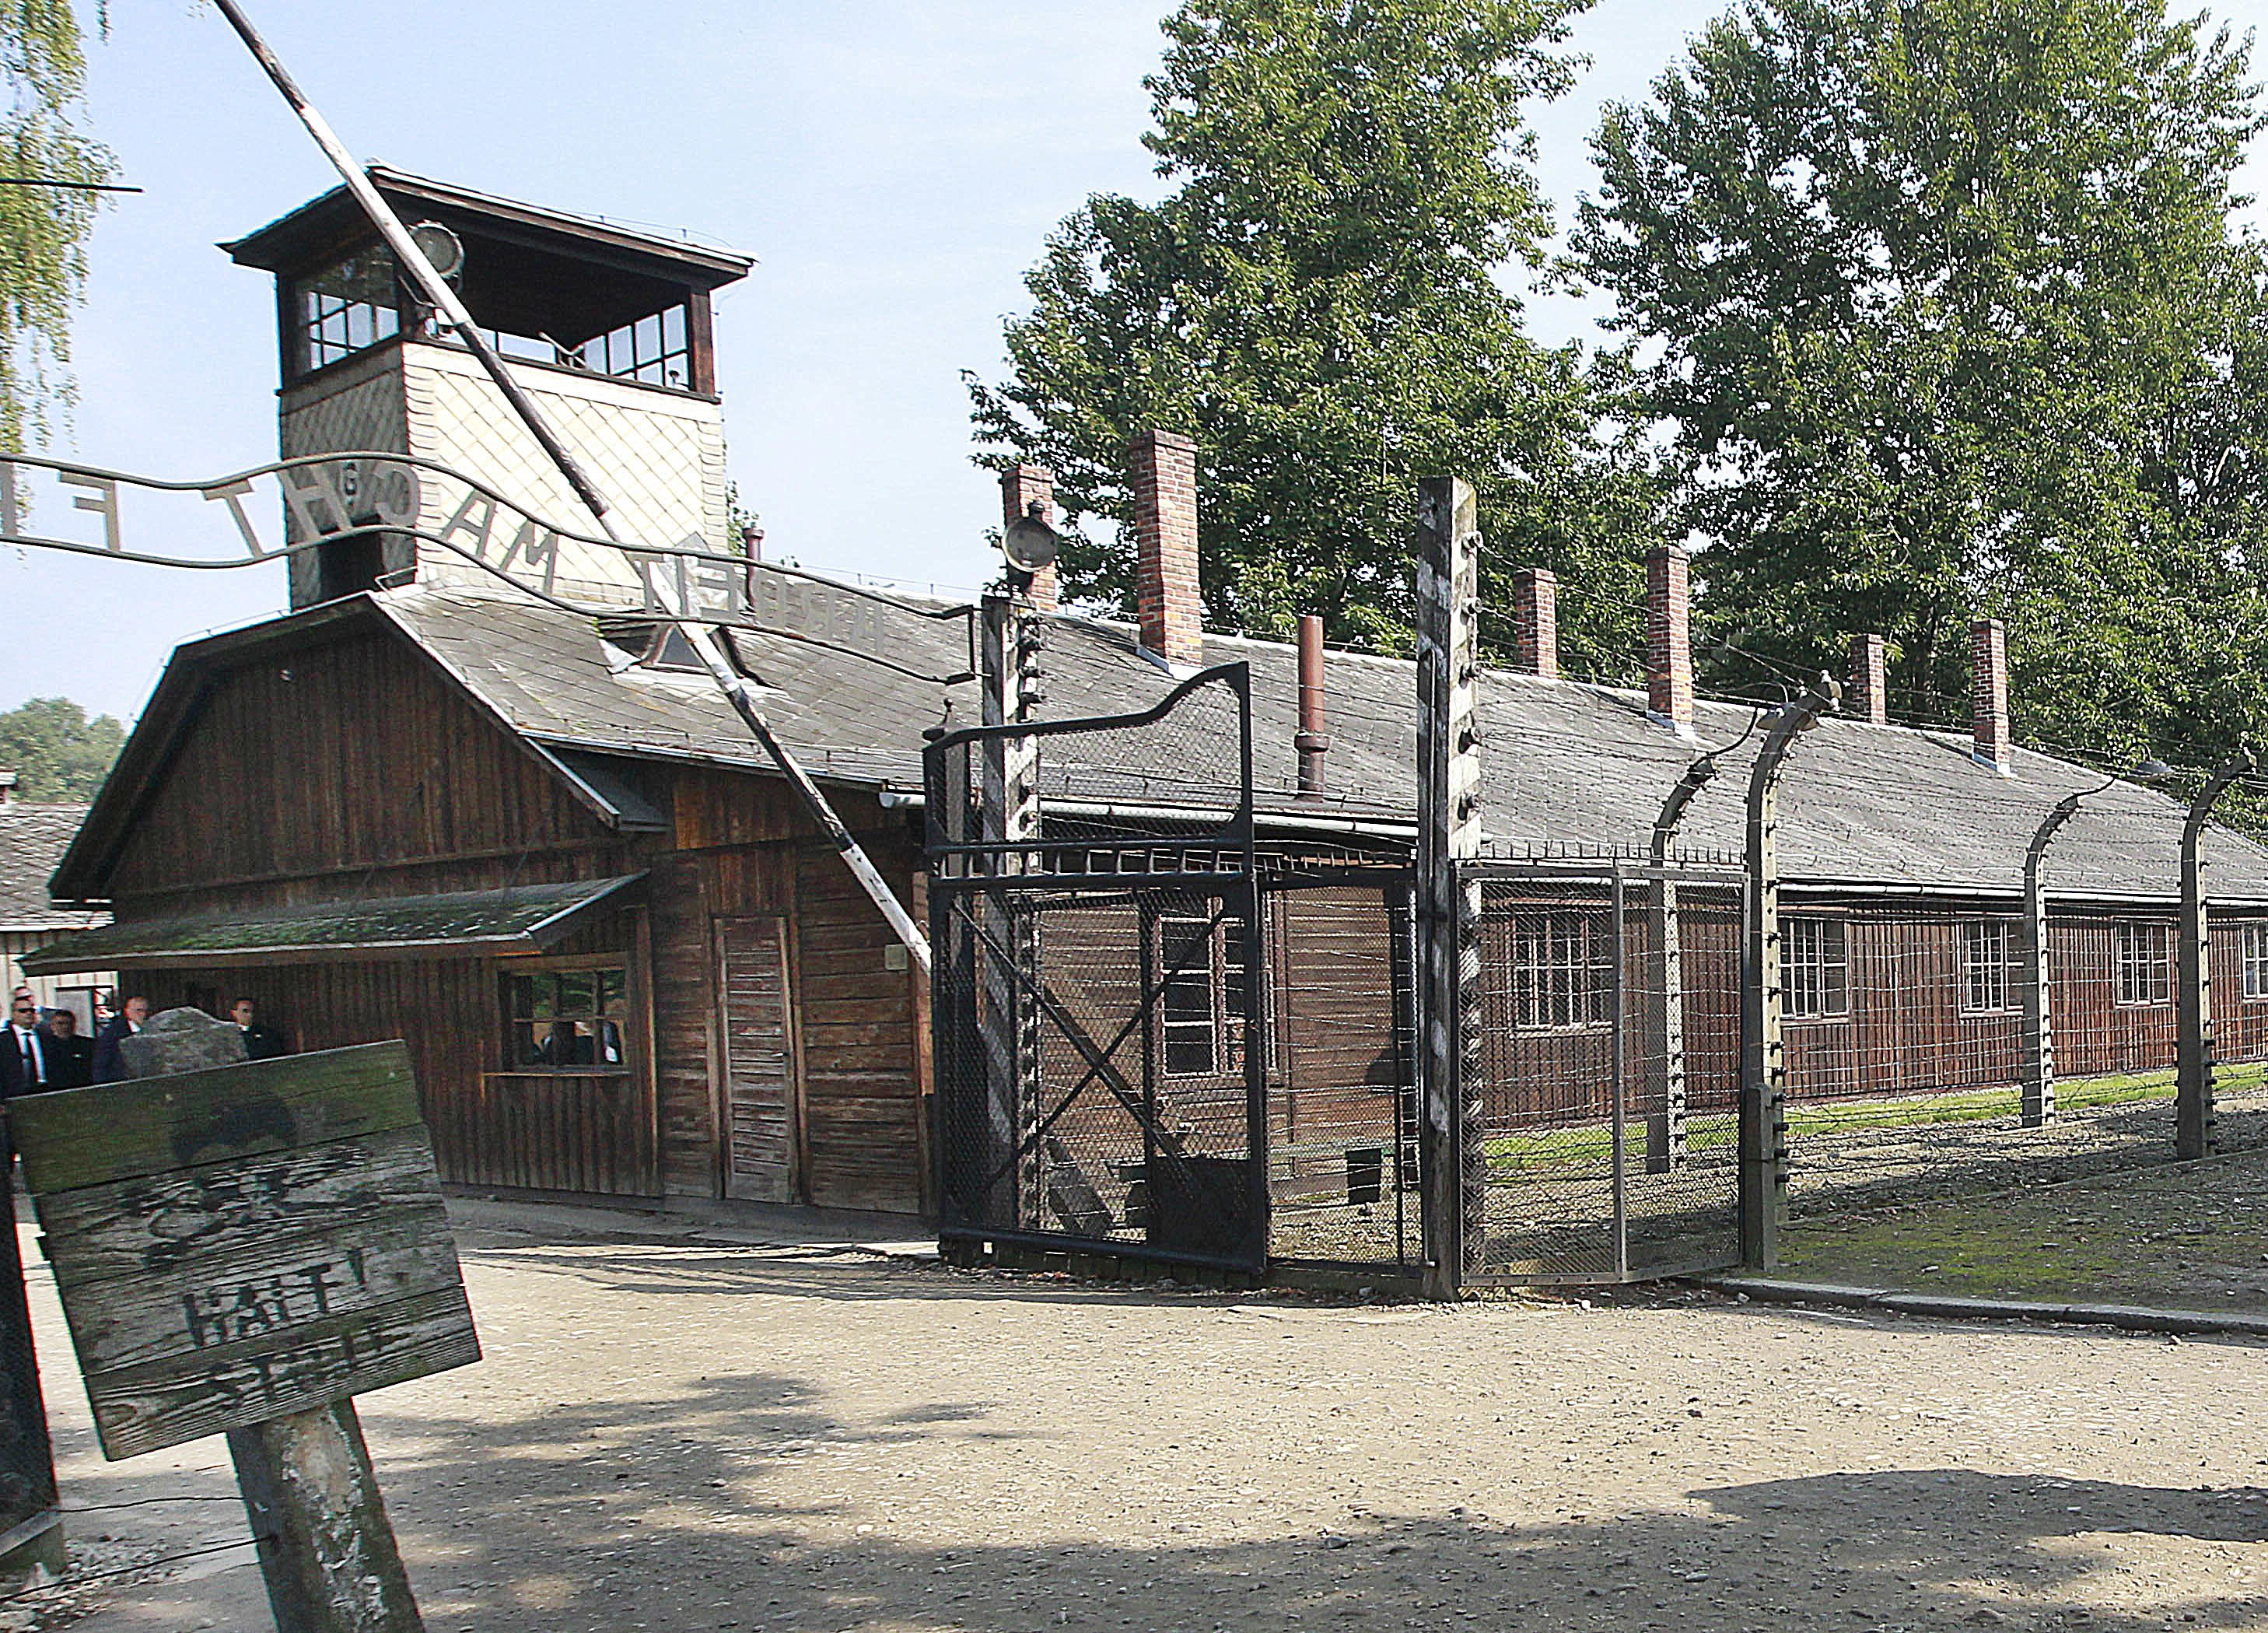 Amid US racial divisions, Auschwitz memorial issues warning